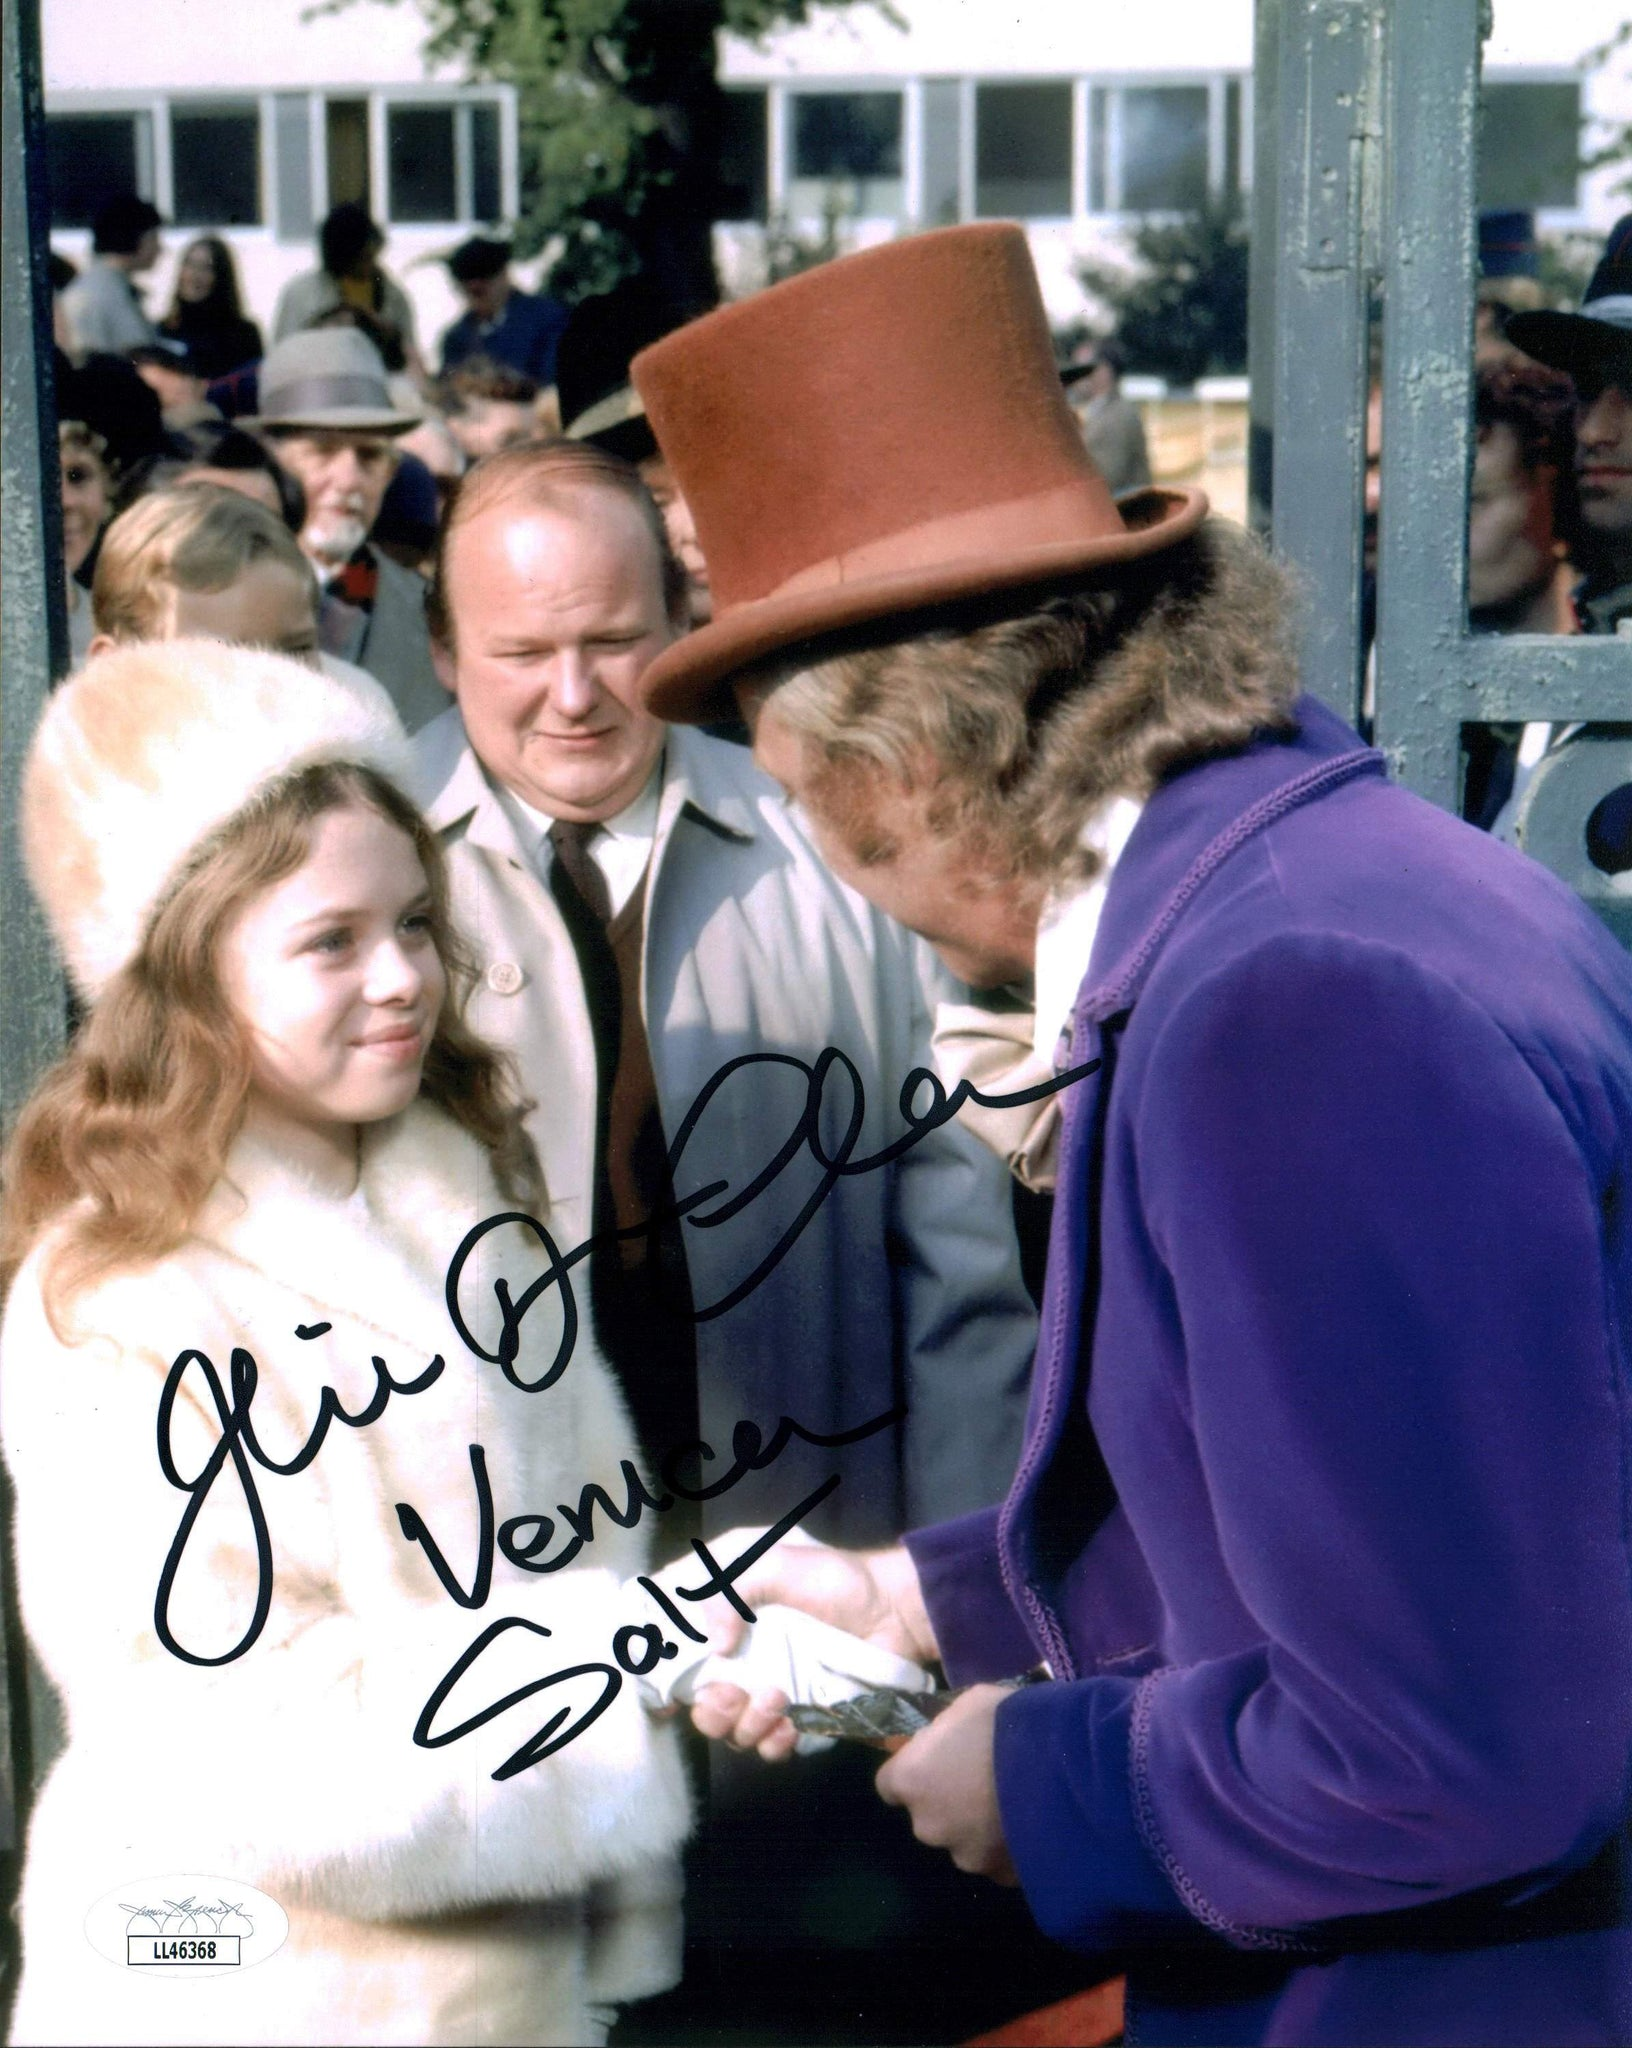 Julie Dawn Cole Willy Wonka 8x10 Photo Signed Autograph JSA Certified COA Auto GalaxyCon